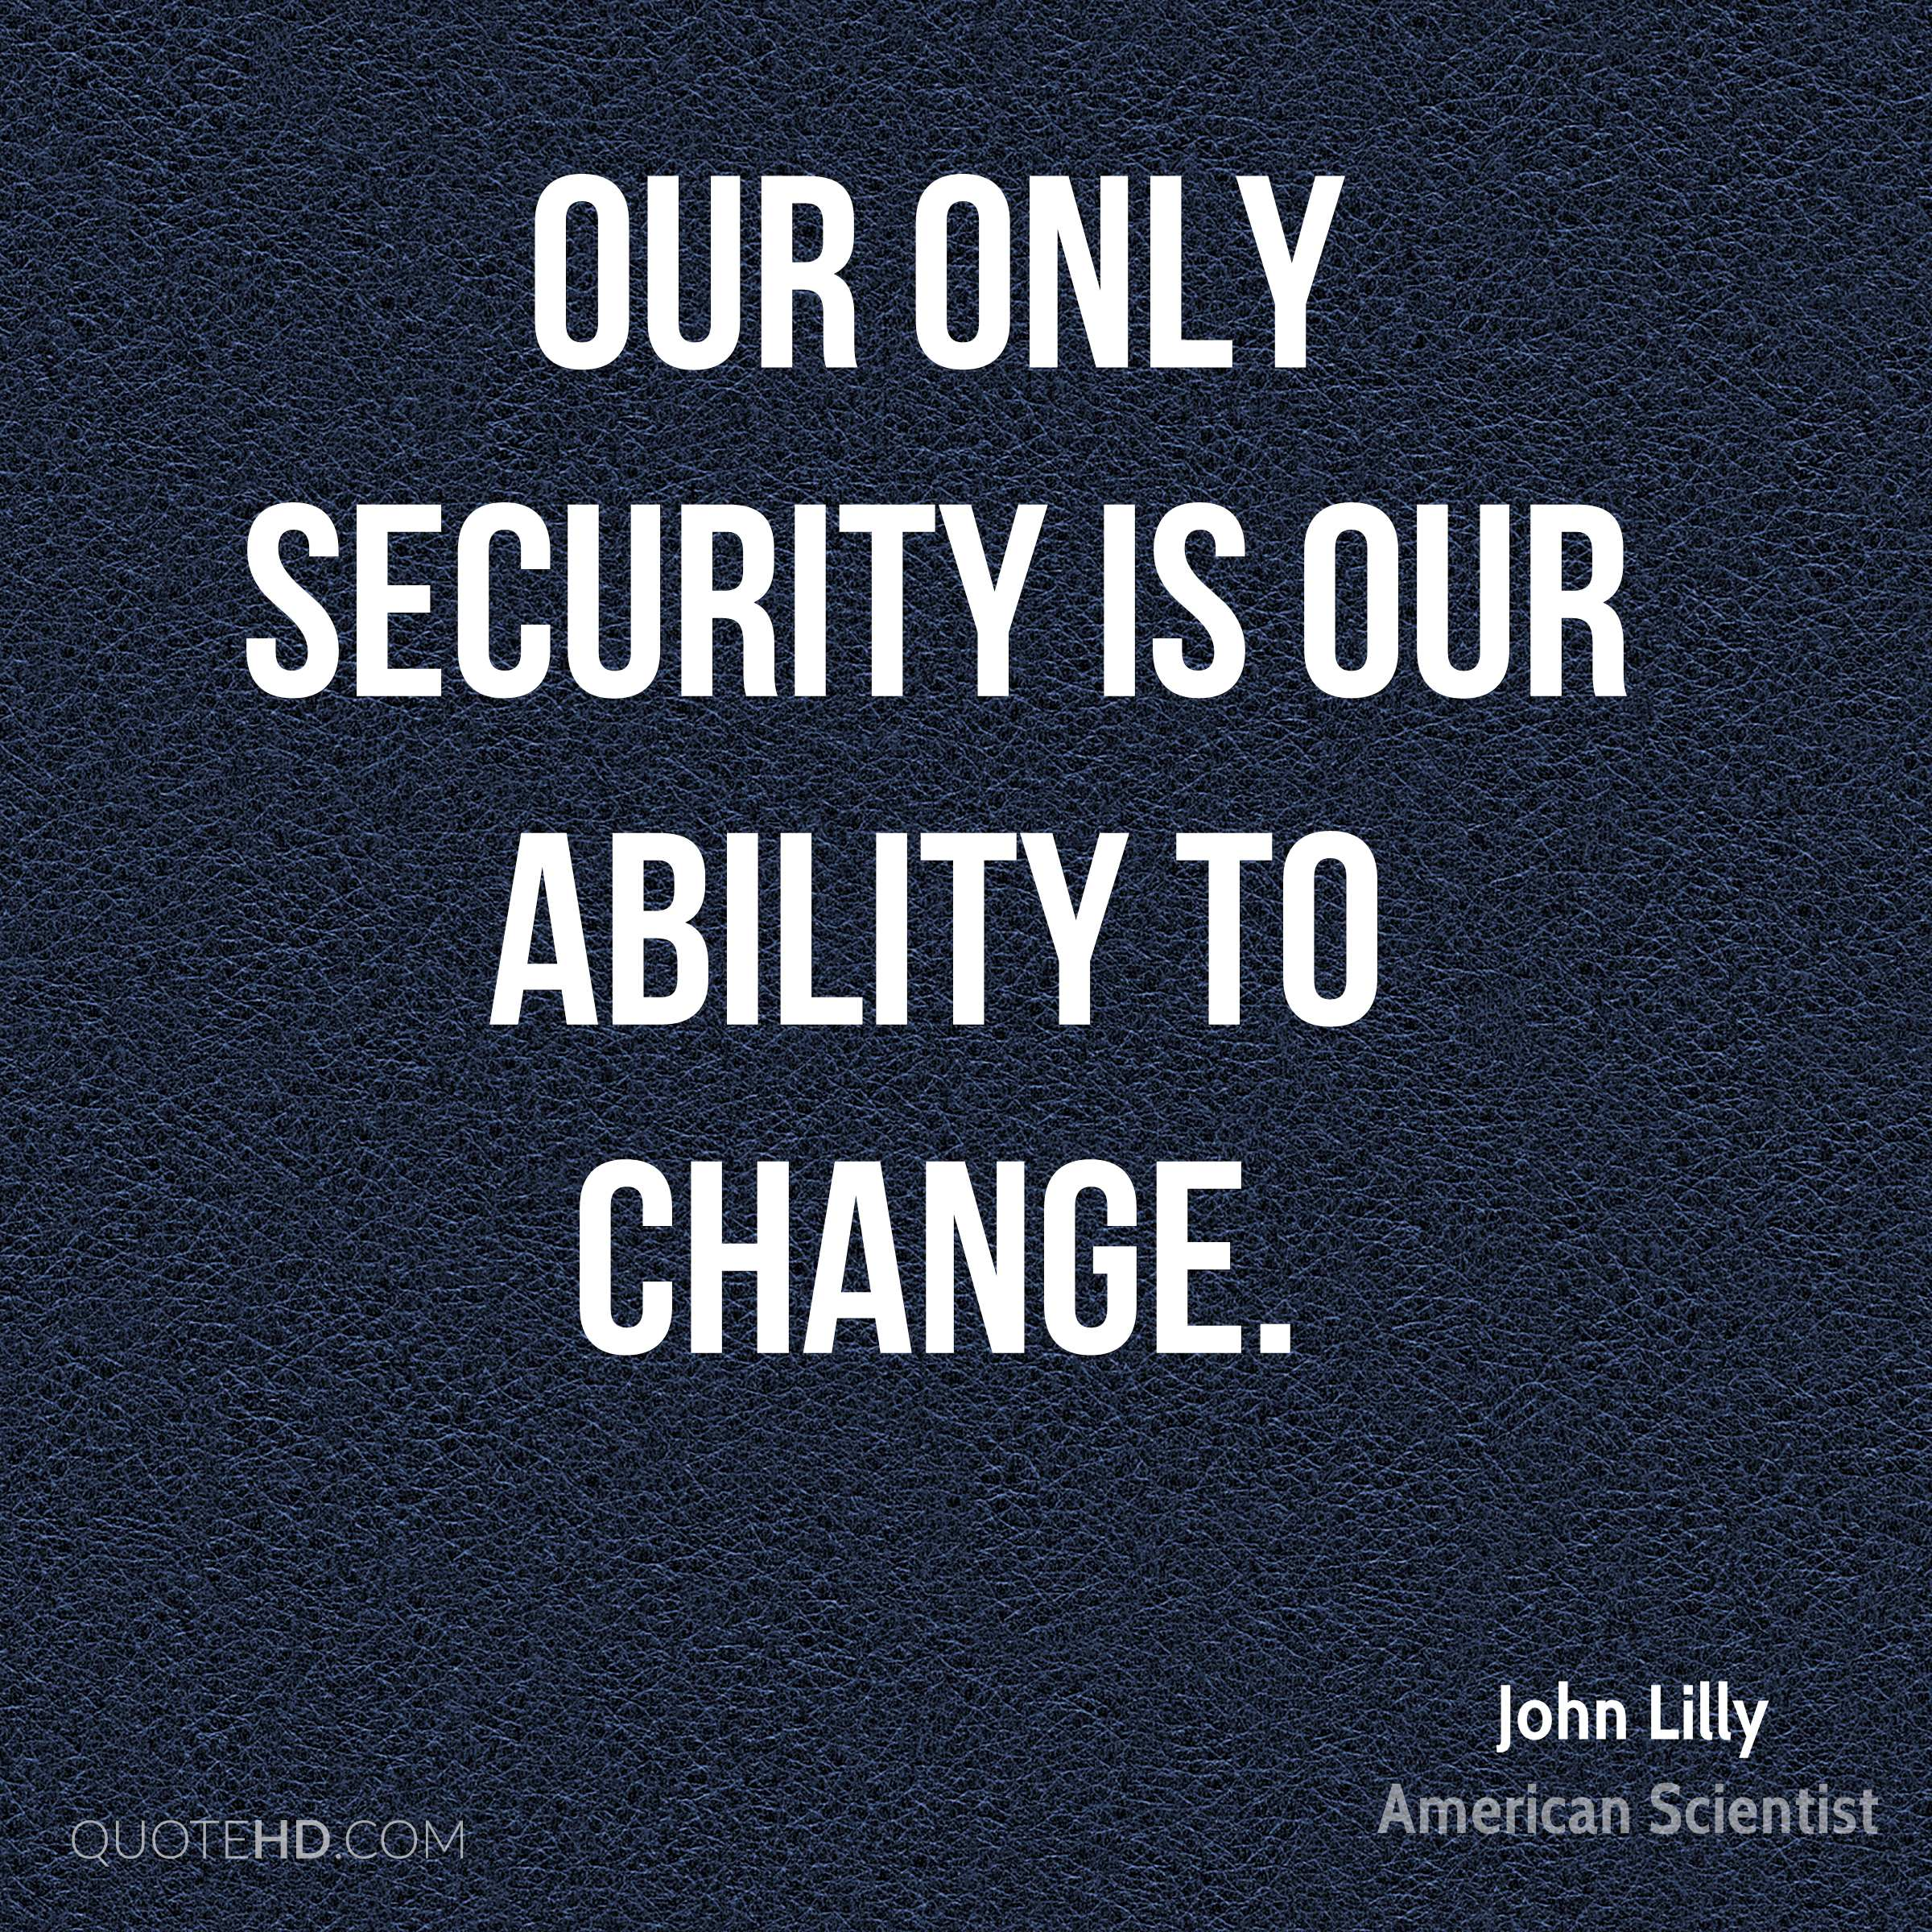 Our only security is our ability to change.